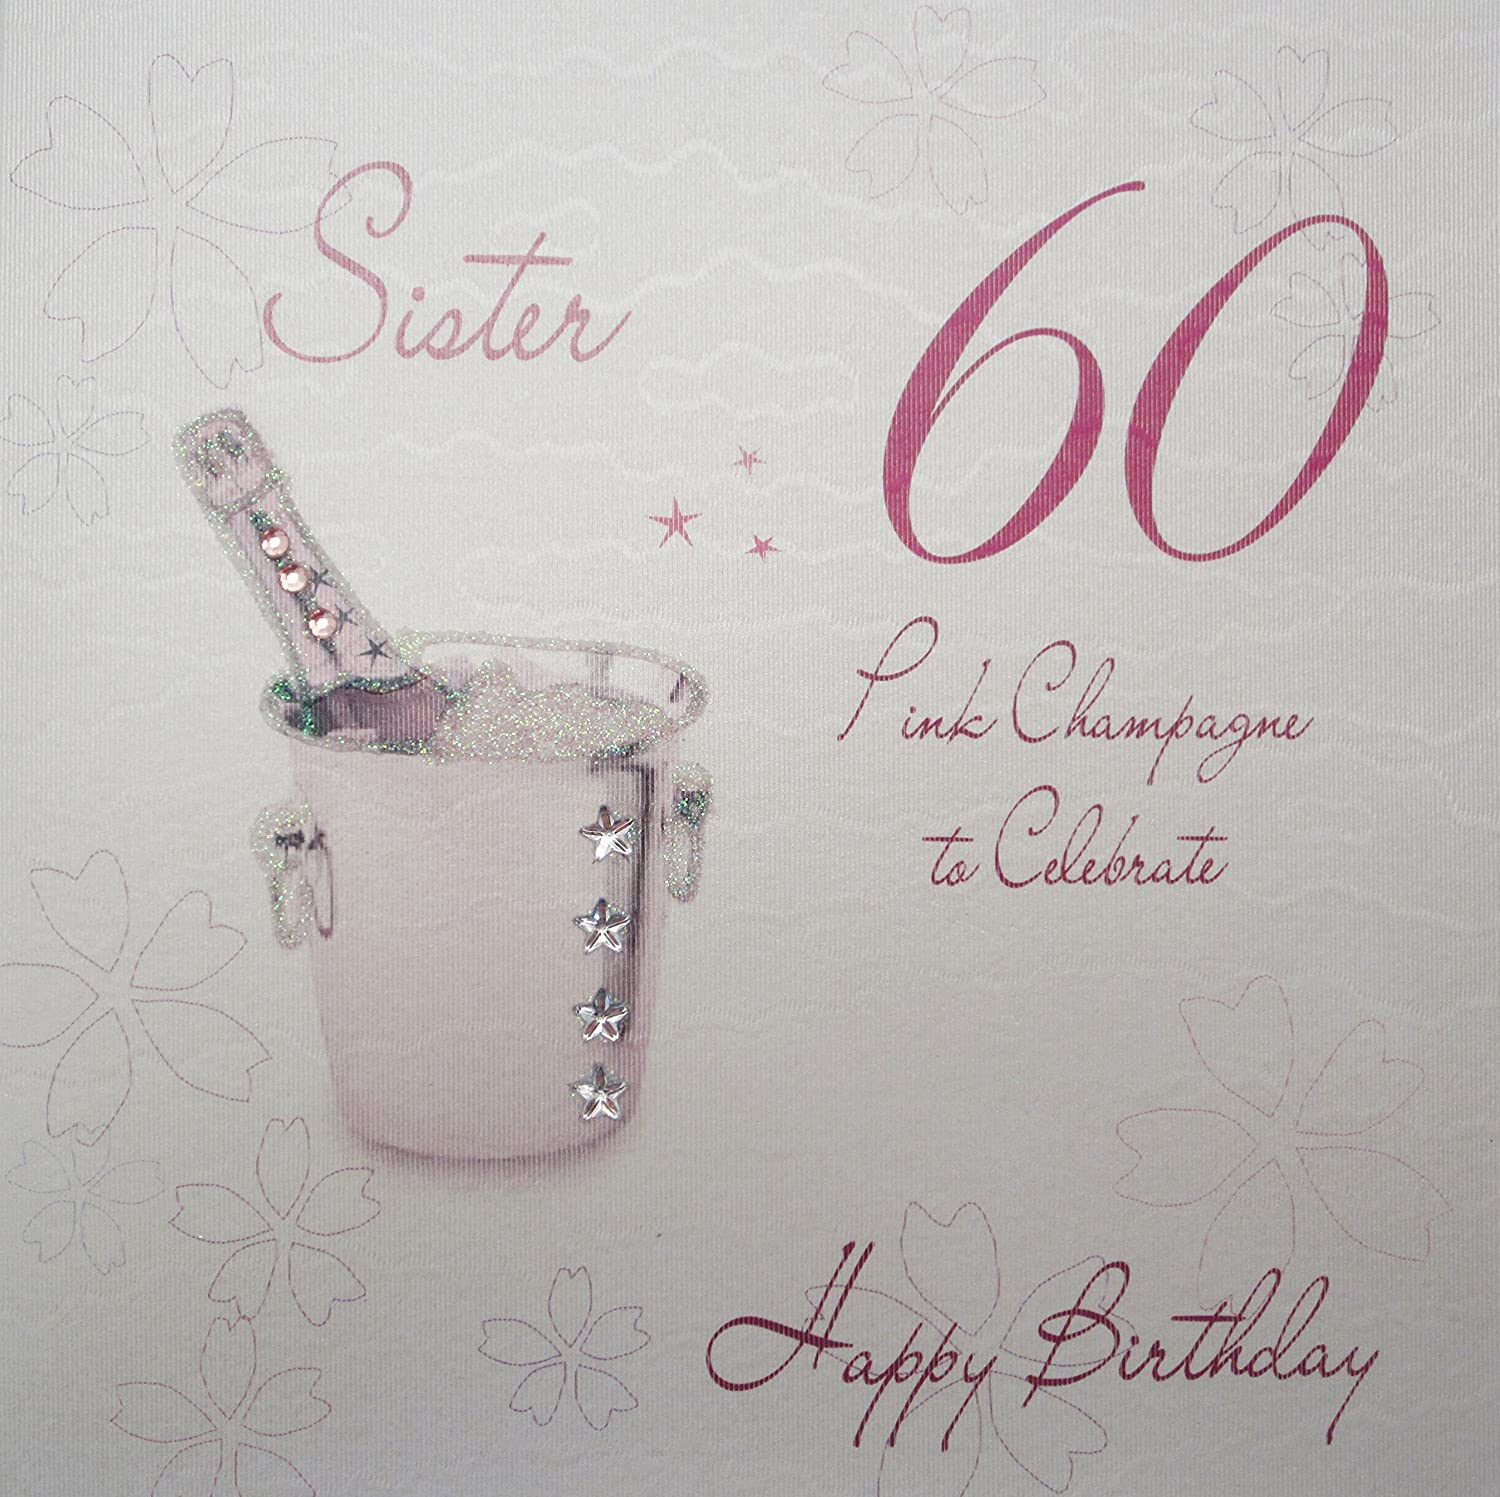 WHITE COTTON CARDS Sister 60 Celebrate Happy Handmade 60th Birthday Card Pink Champagne